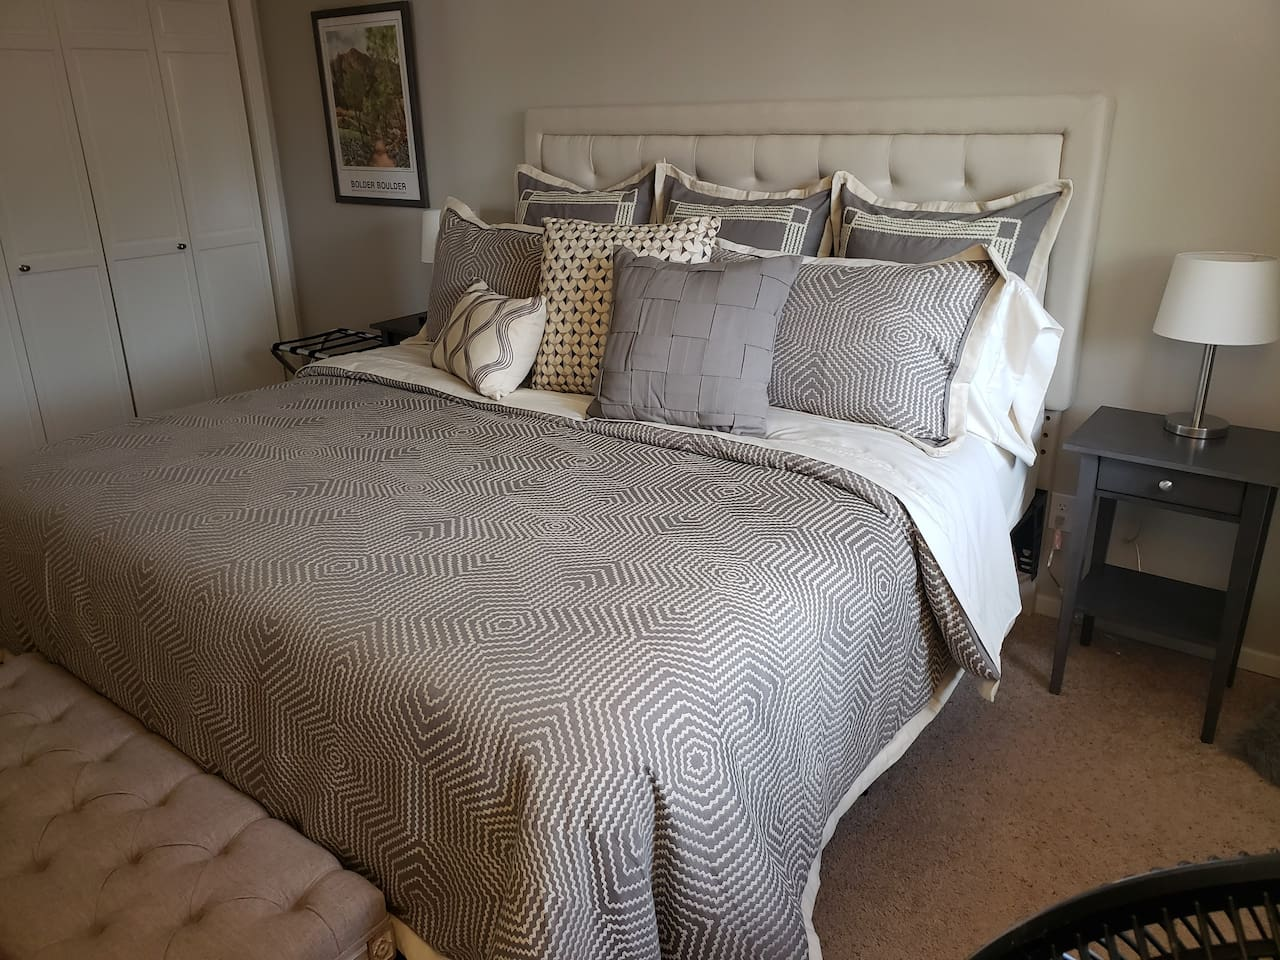 New King sized bed with all new bedding.  Firm mattress with memory foam topper.